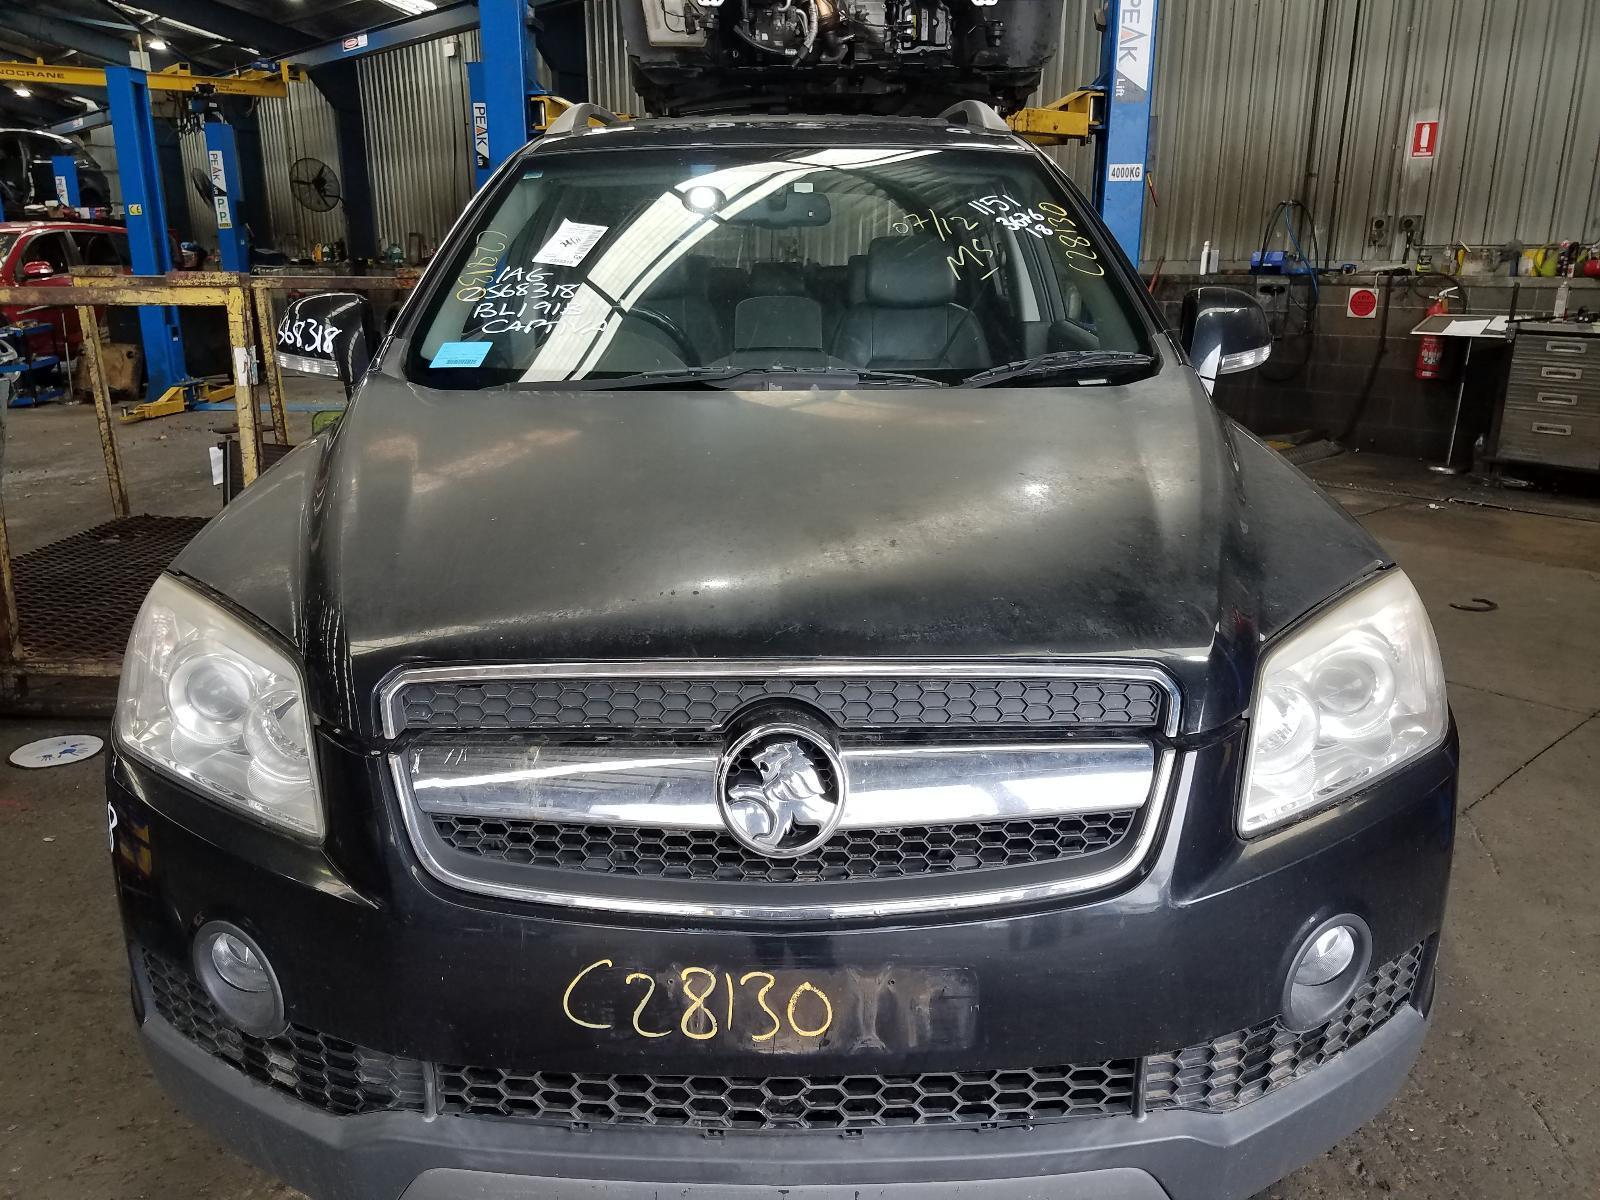 View Auto part Trans/Gearbox Holden Captiva 2009